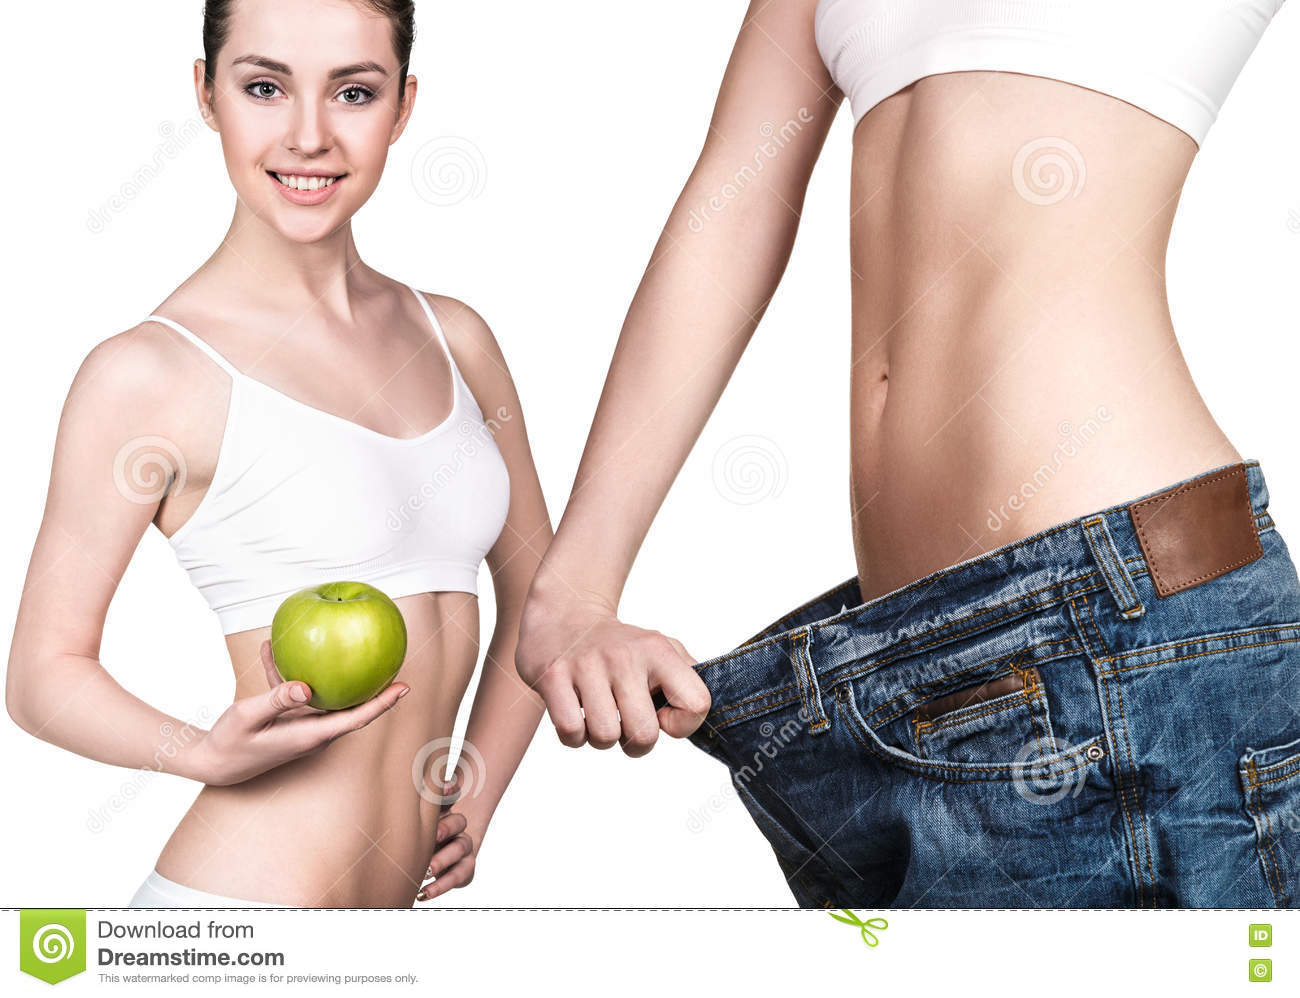 Girl holding an apple and wearing big jeans